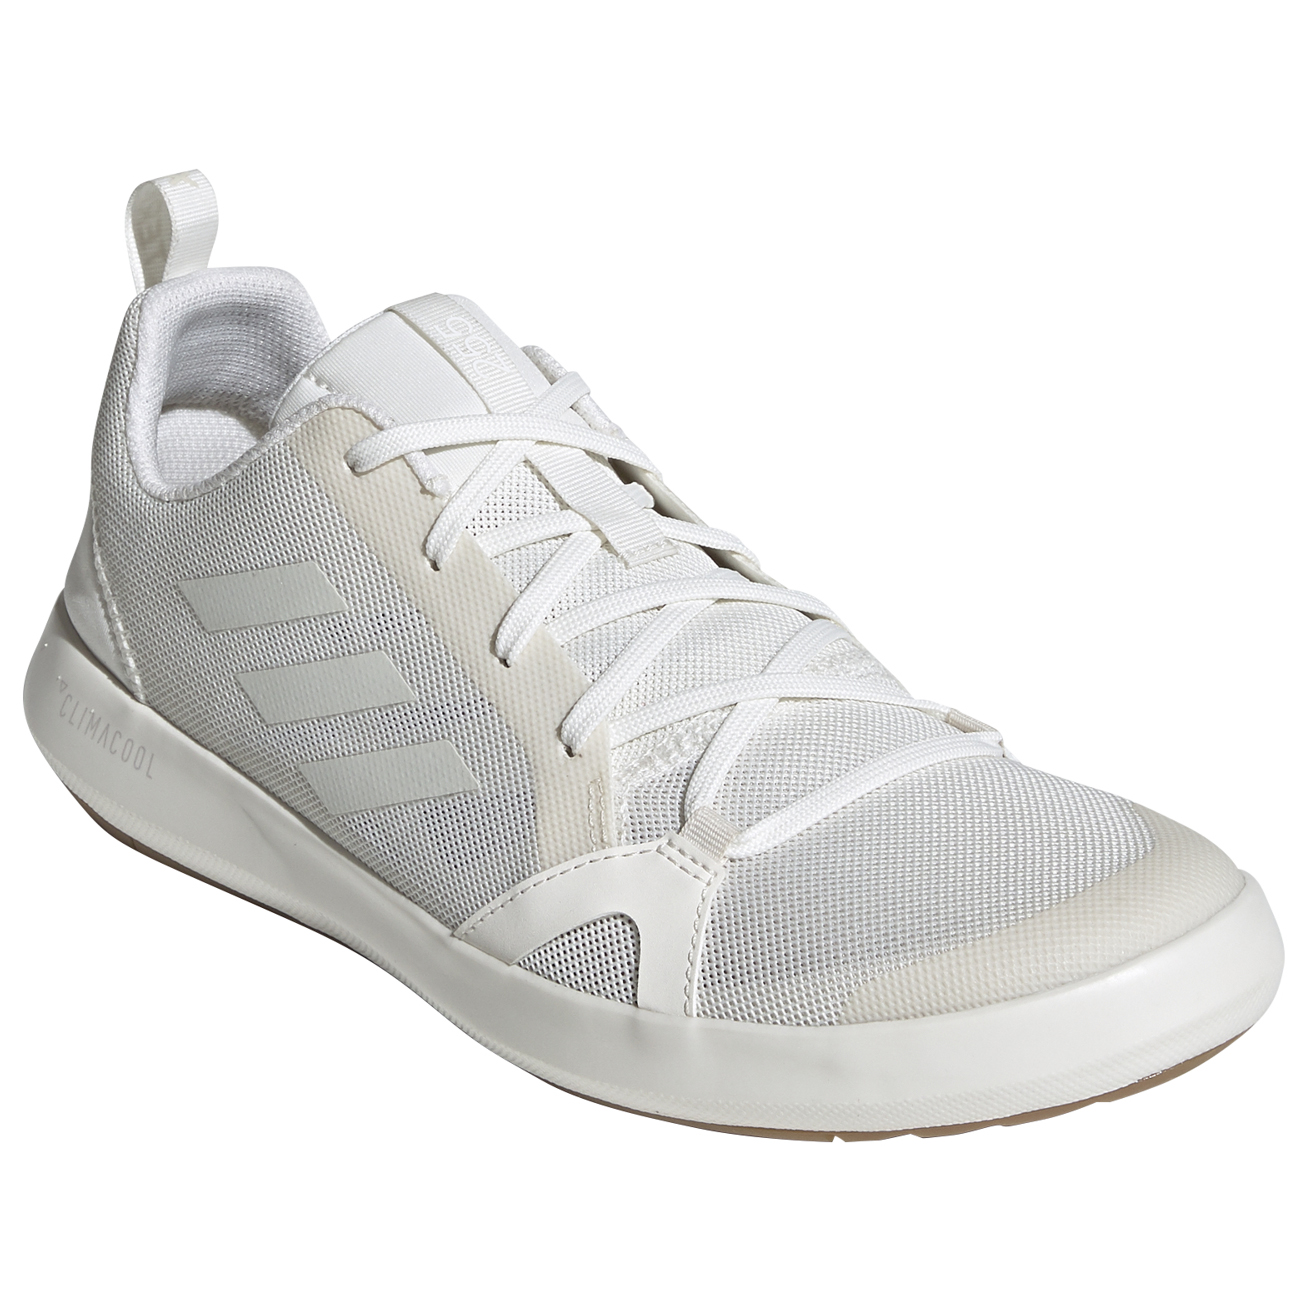 adidas Terrex CC Boat Watersportschoenen Non Dyed Core White Grey One | 8,5 (UK)